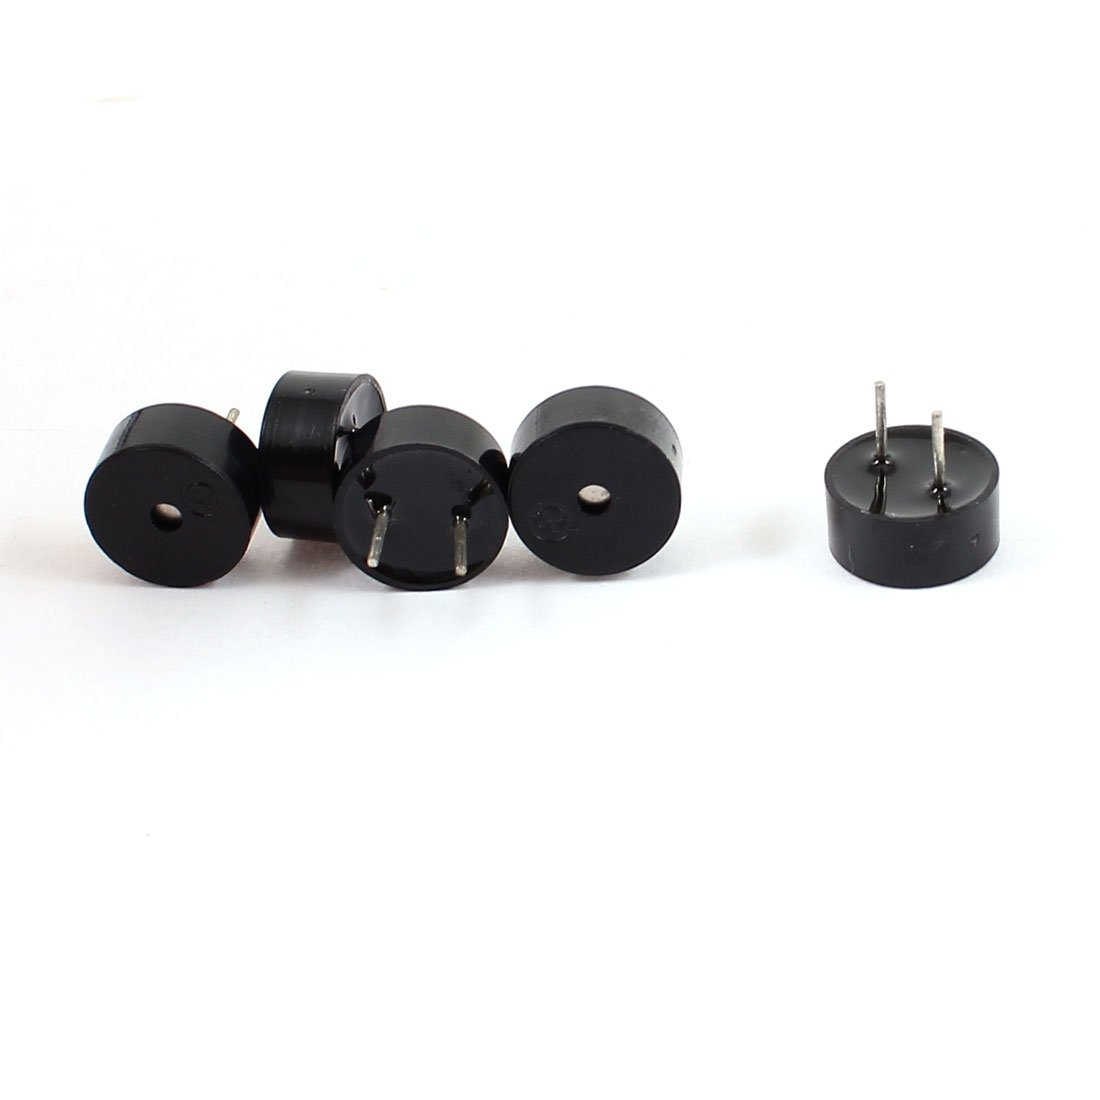 Aexit 5 Pcs Security & Surveillance DC 3 5V Electronic Continuous Passive Sound Horns & Sirens Buzzer Black